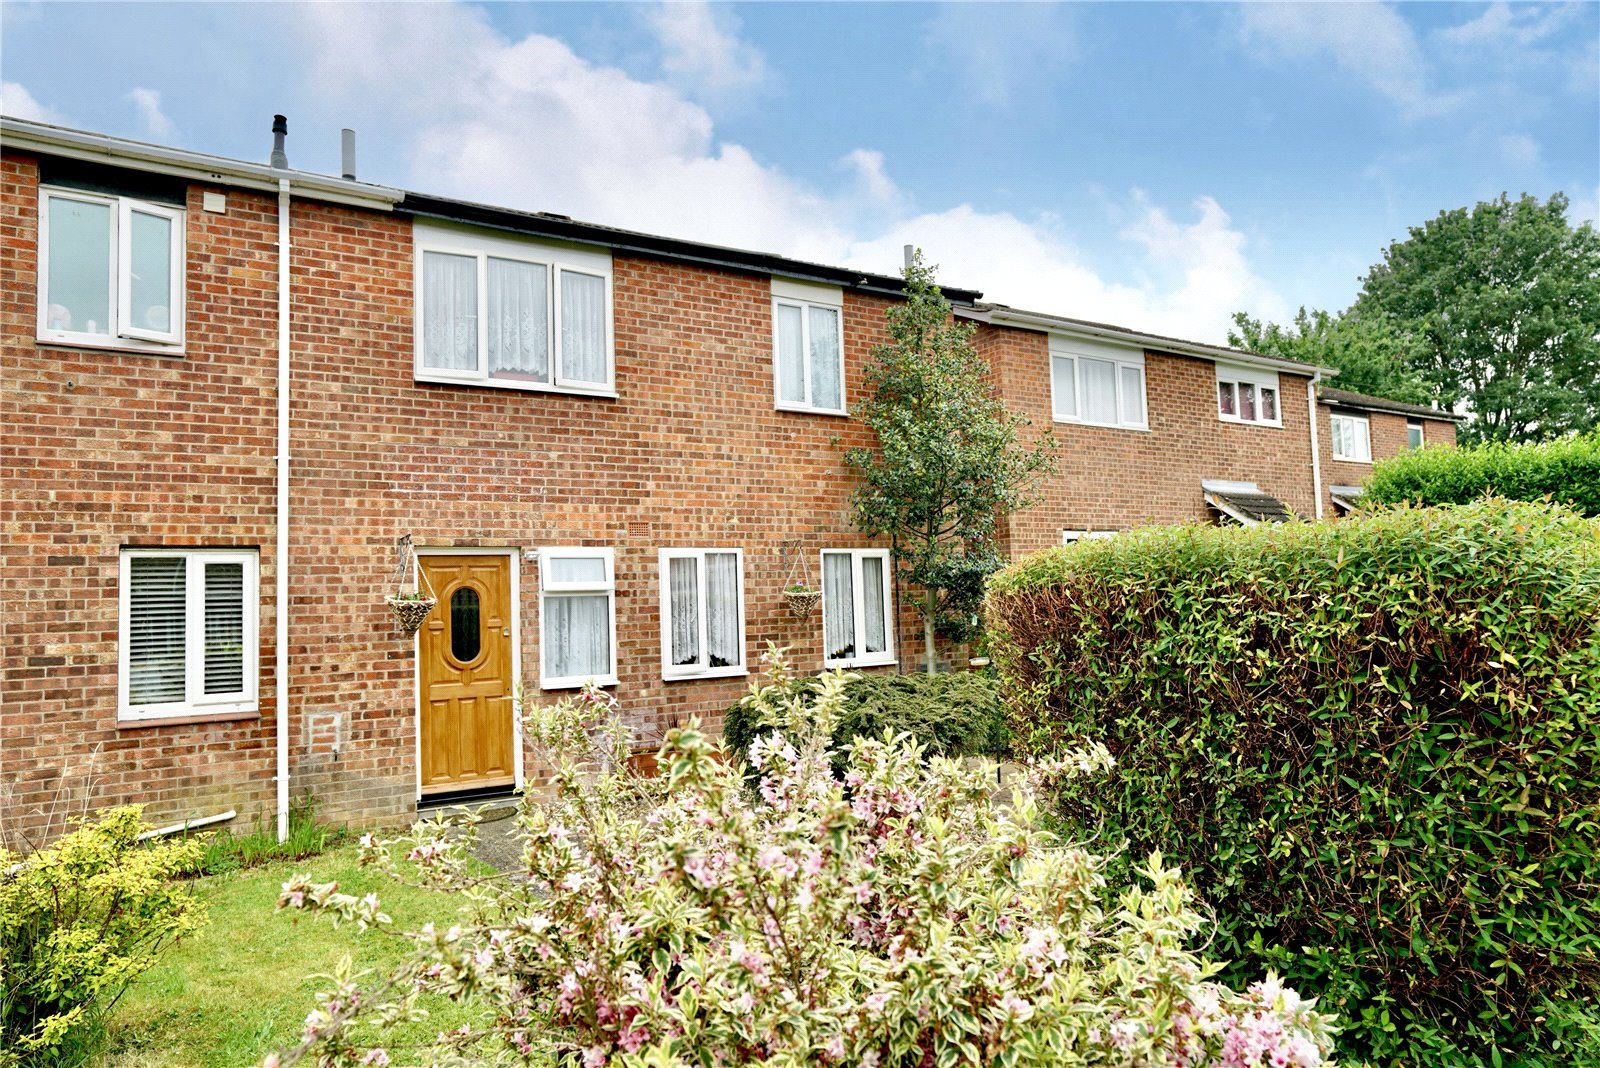 3 bed house for sale in Countess Close, Eaton Socon, PE19